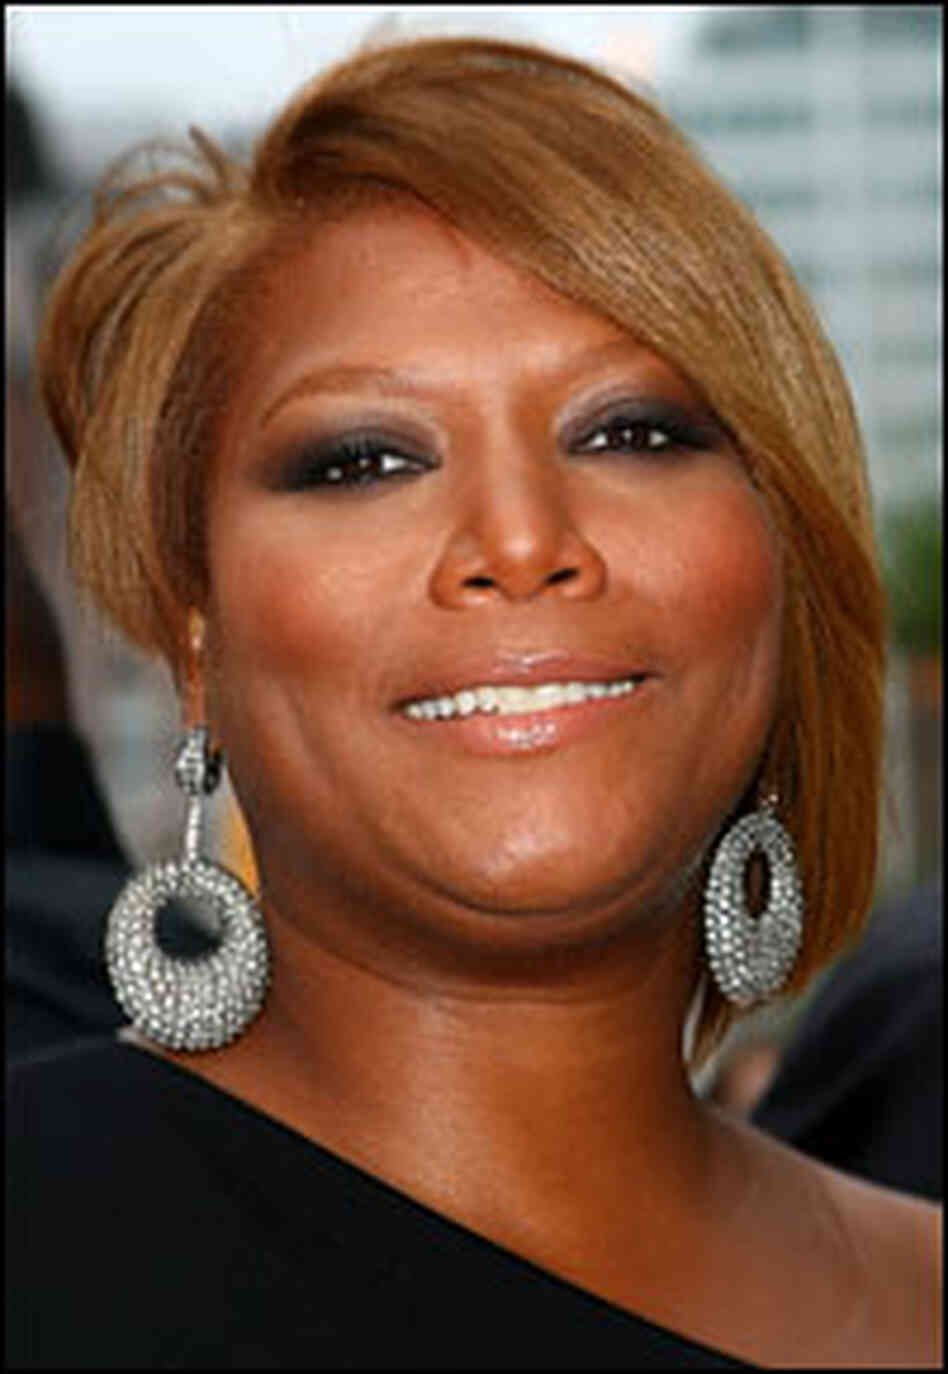 Queen Latifah at the Toronto International Film Festival in September.